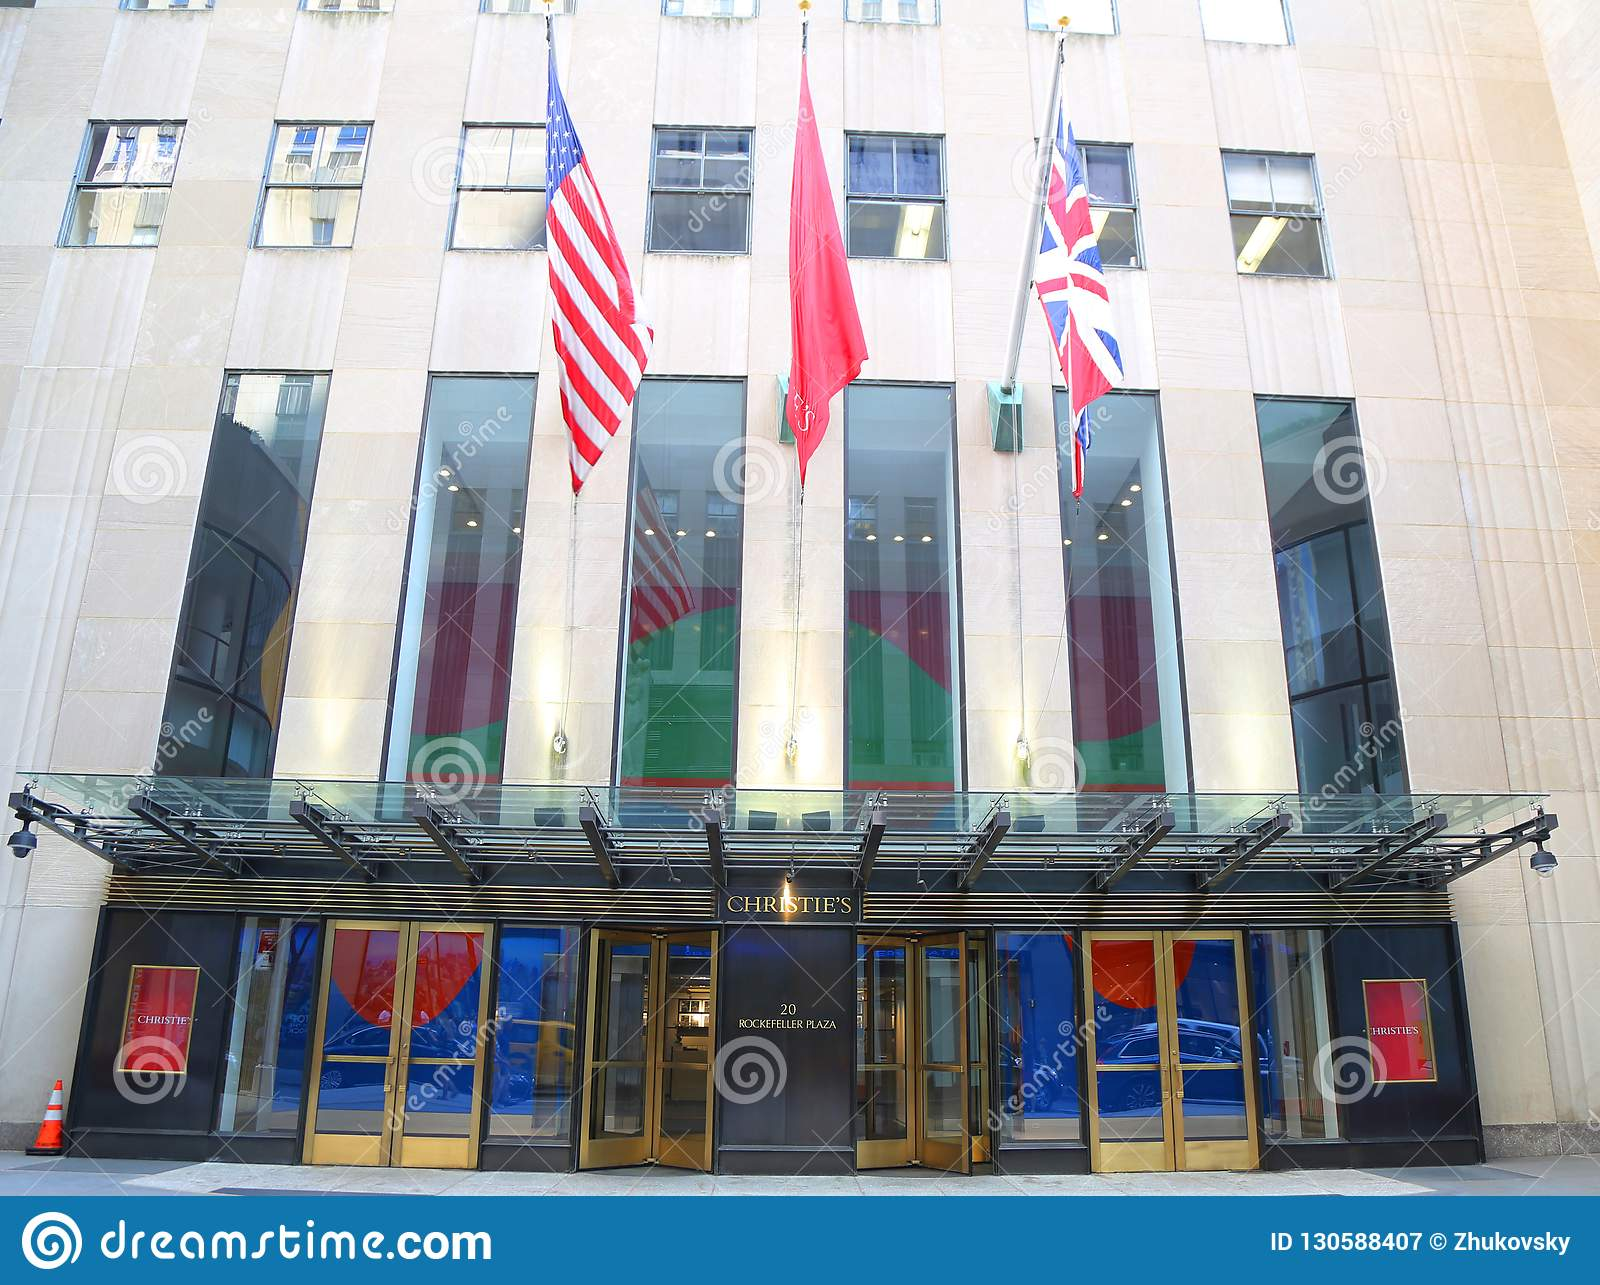 Christies Main Headquarters At Rockefeller Plaza In New York